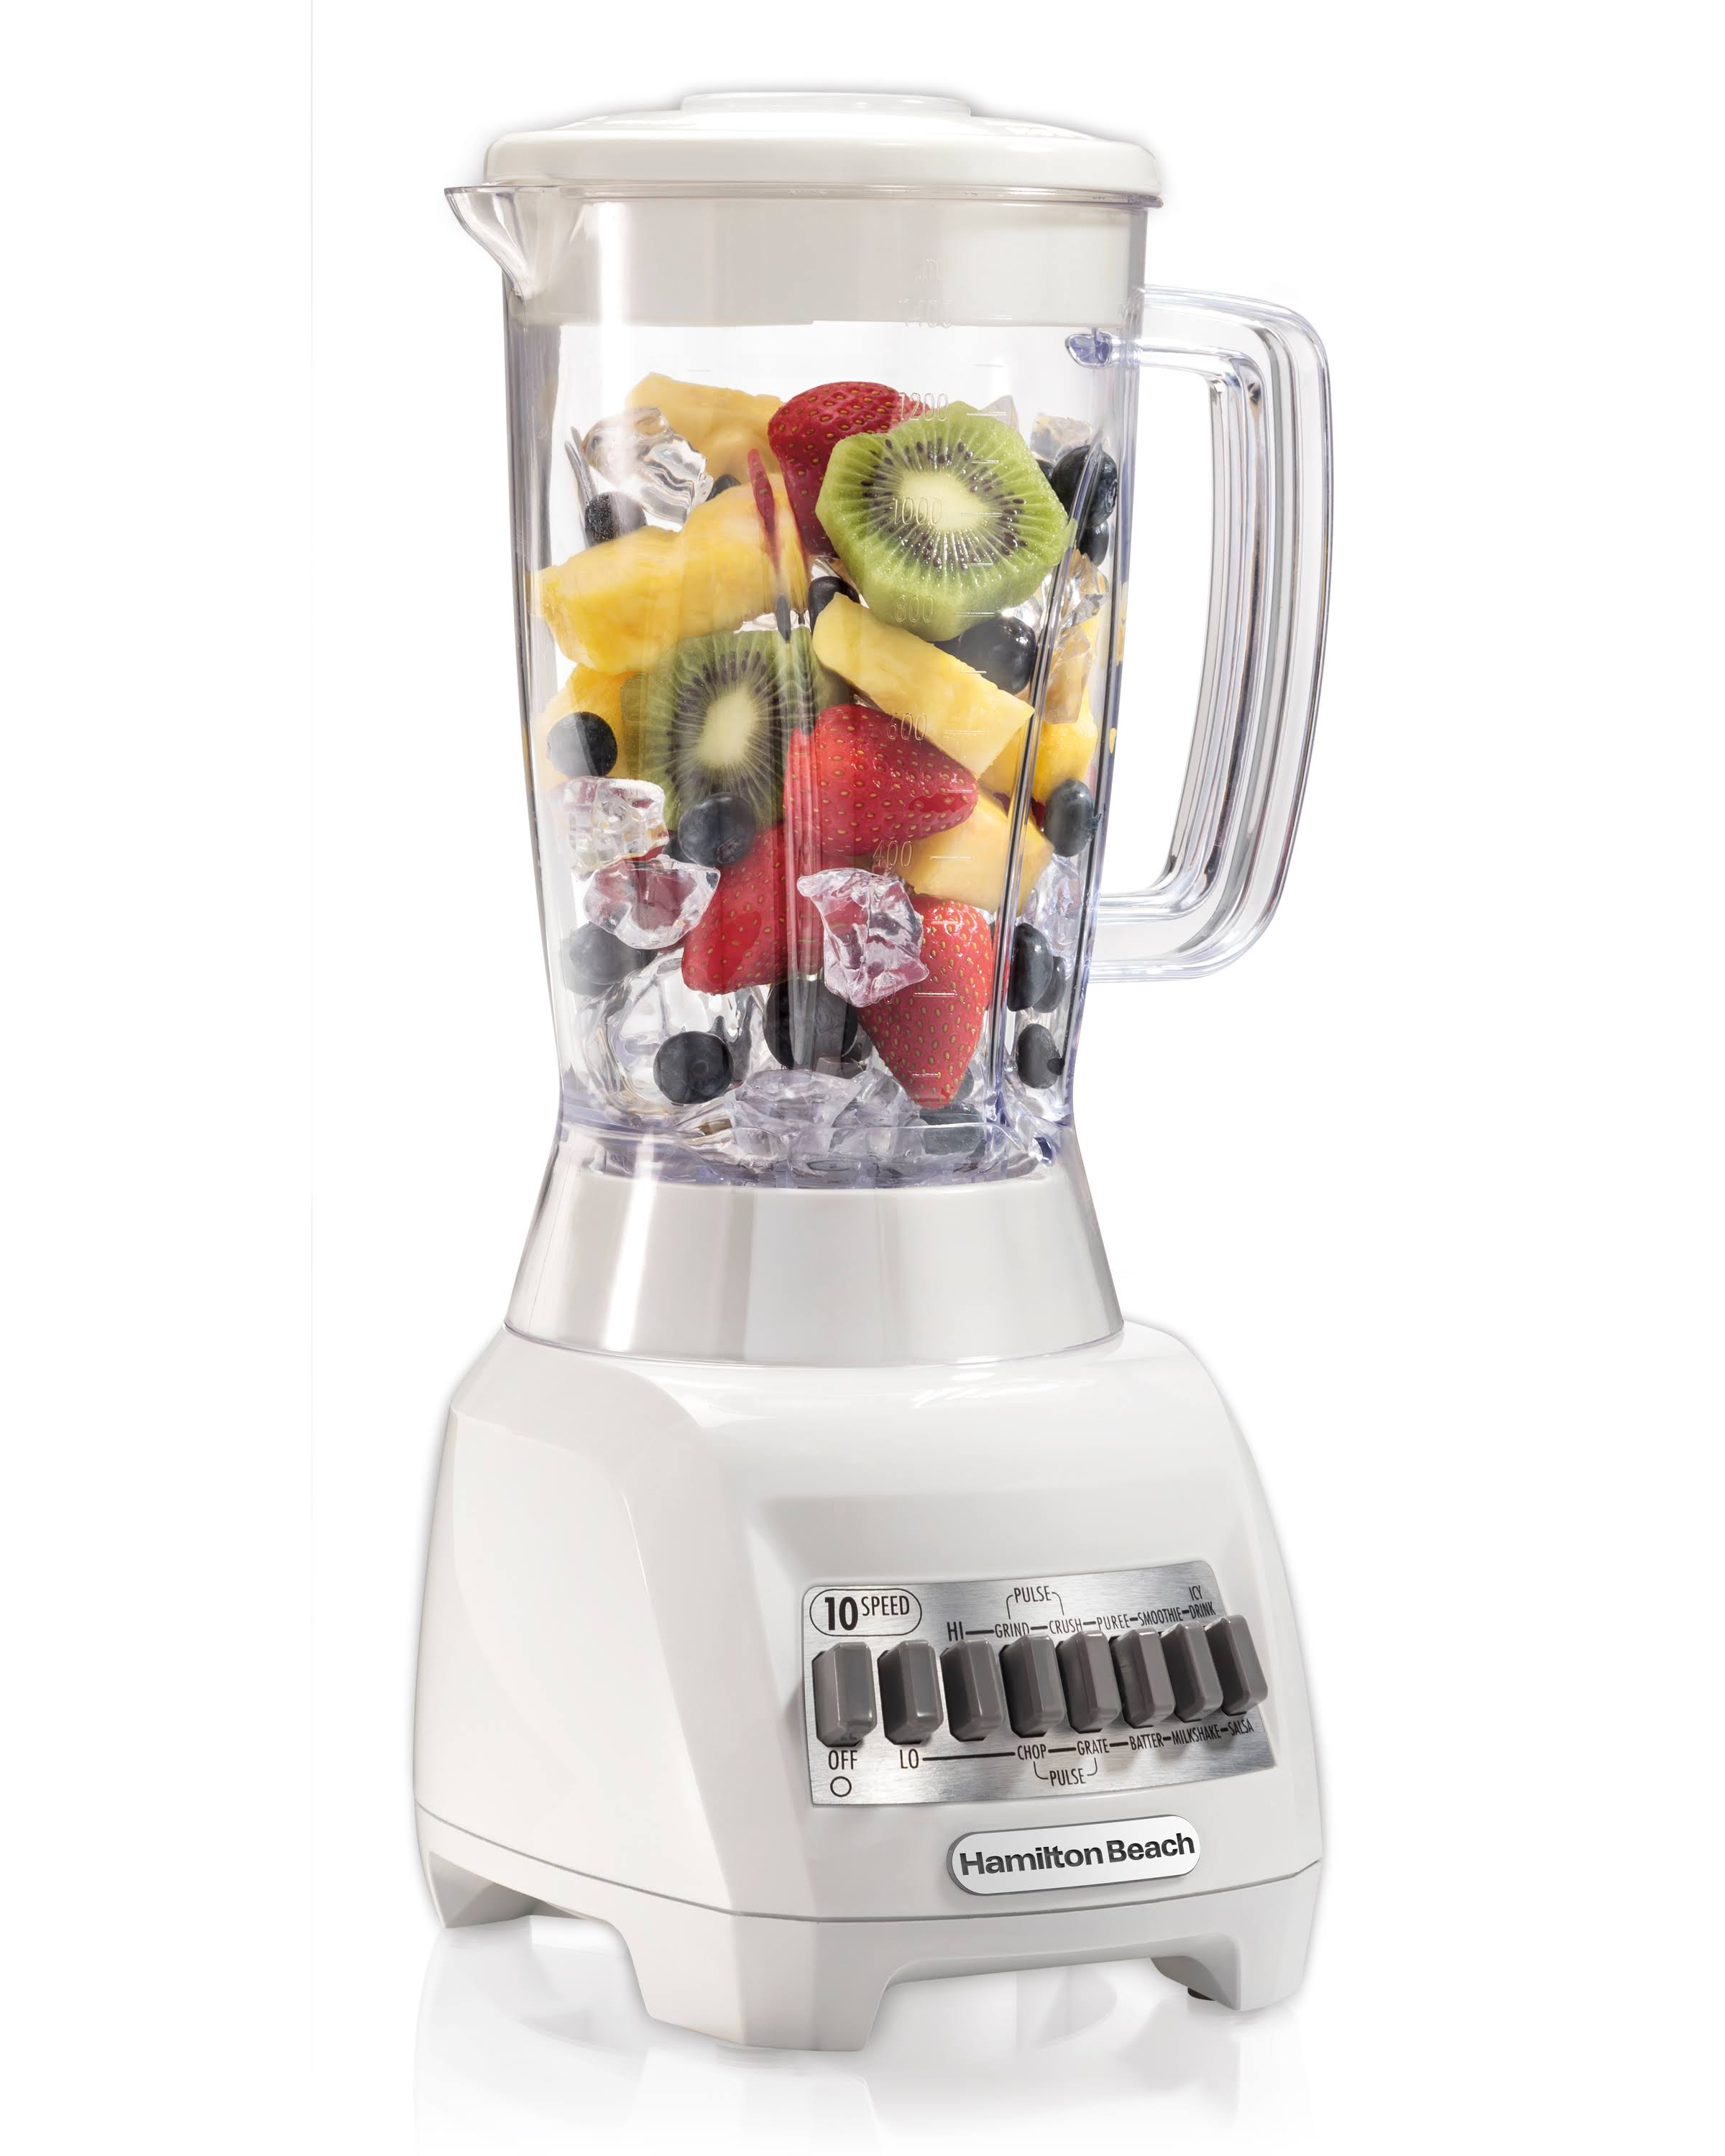 Hamilton Beach 50126 Blender - 10 speed, White